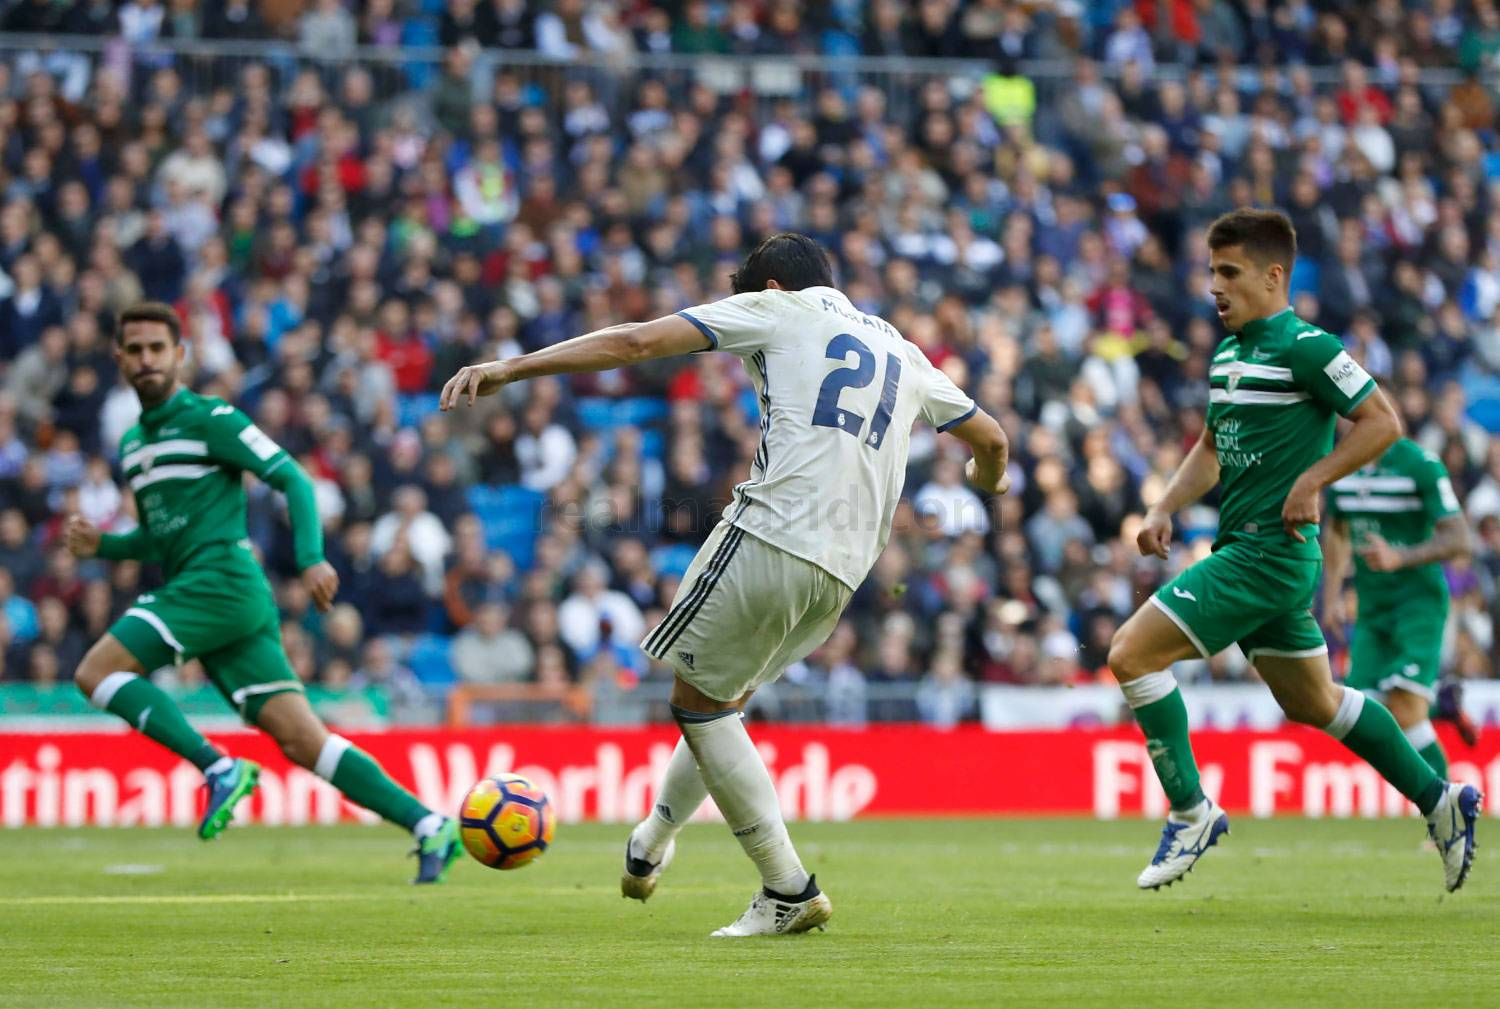 Real Madrid - Real Madrid - Leganés - 06-11-2016